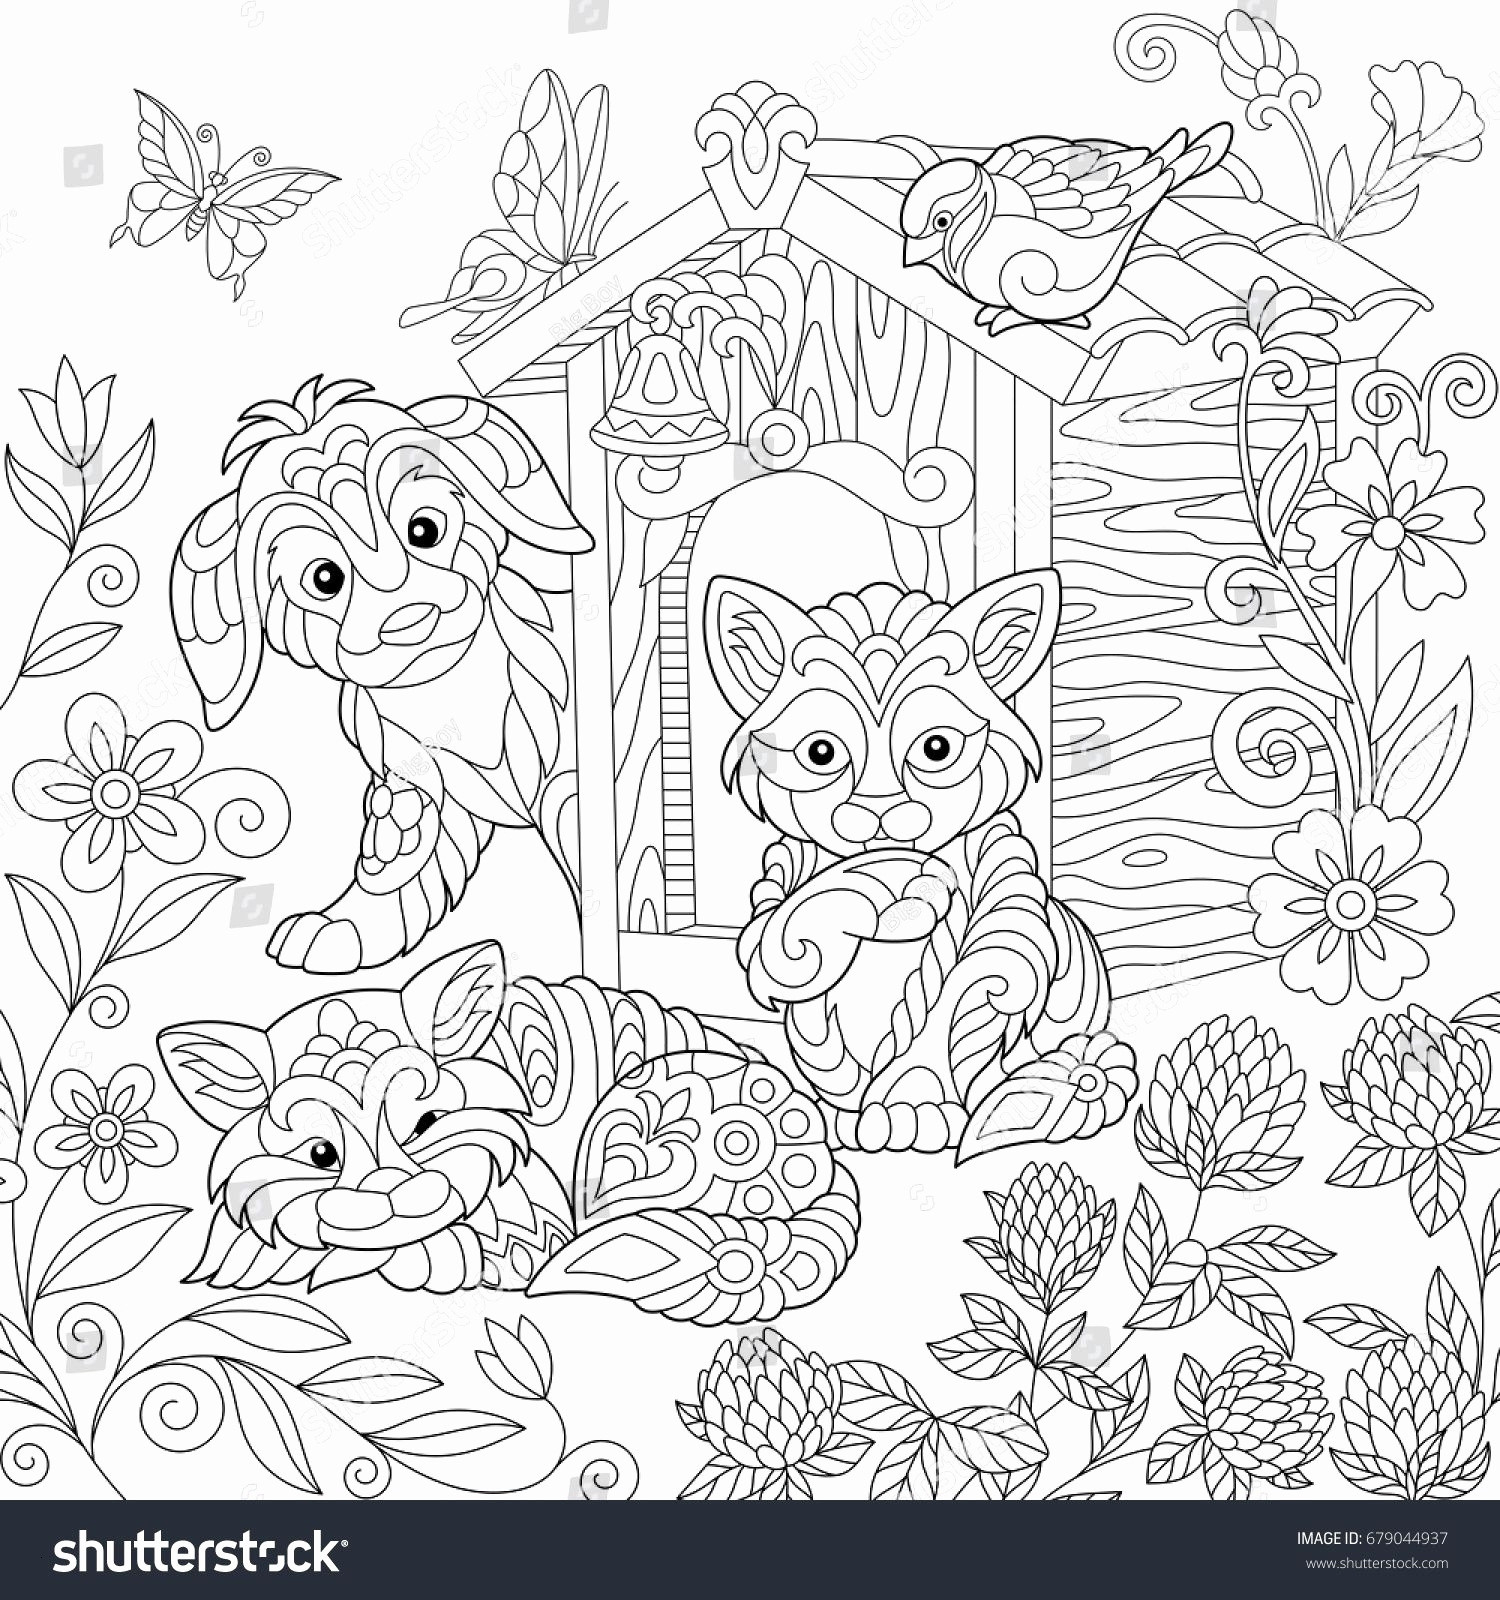 Animal Alphabet Coloring Pages  Collection 5e - Free Download